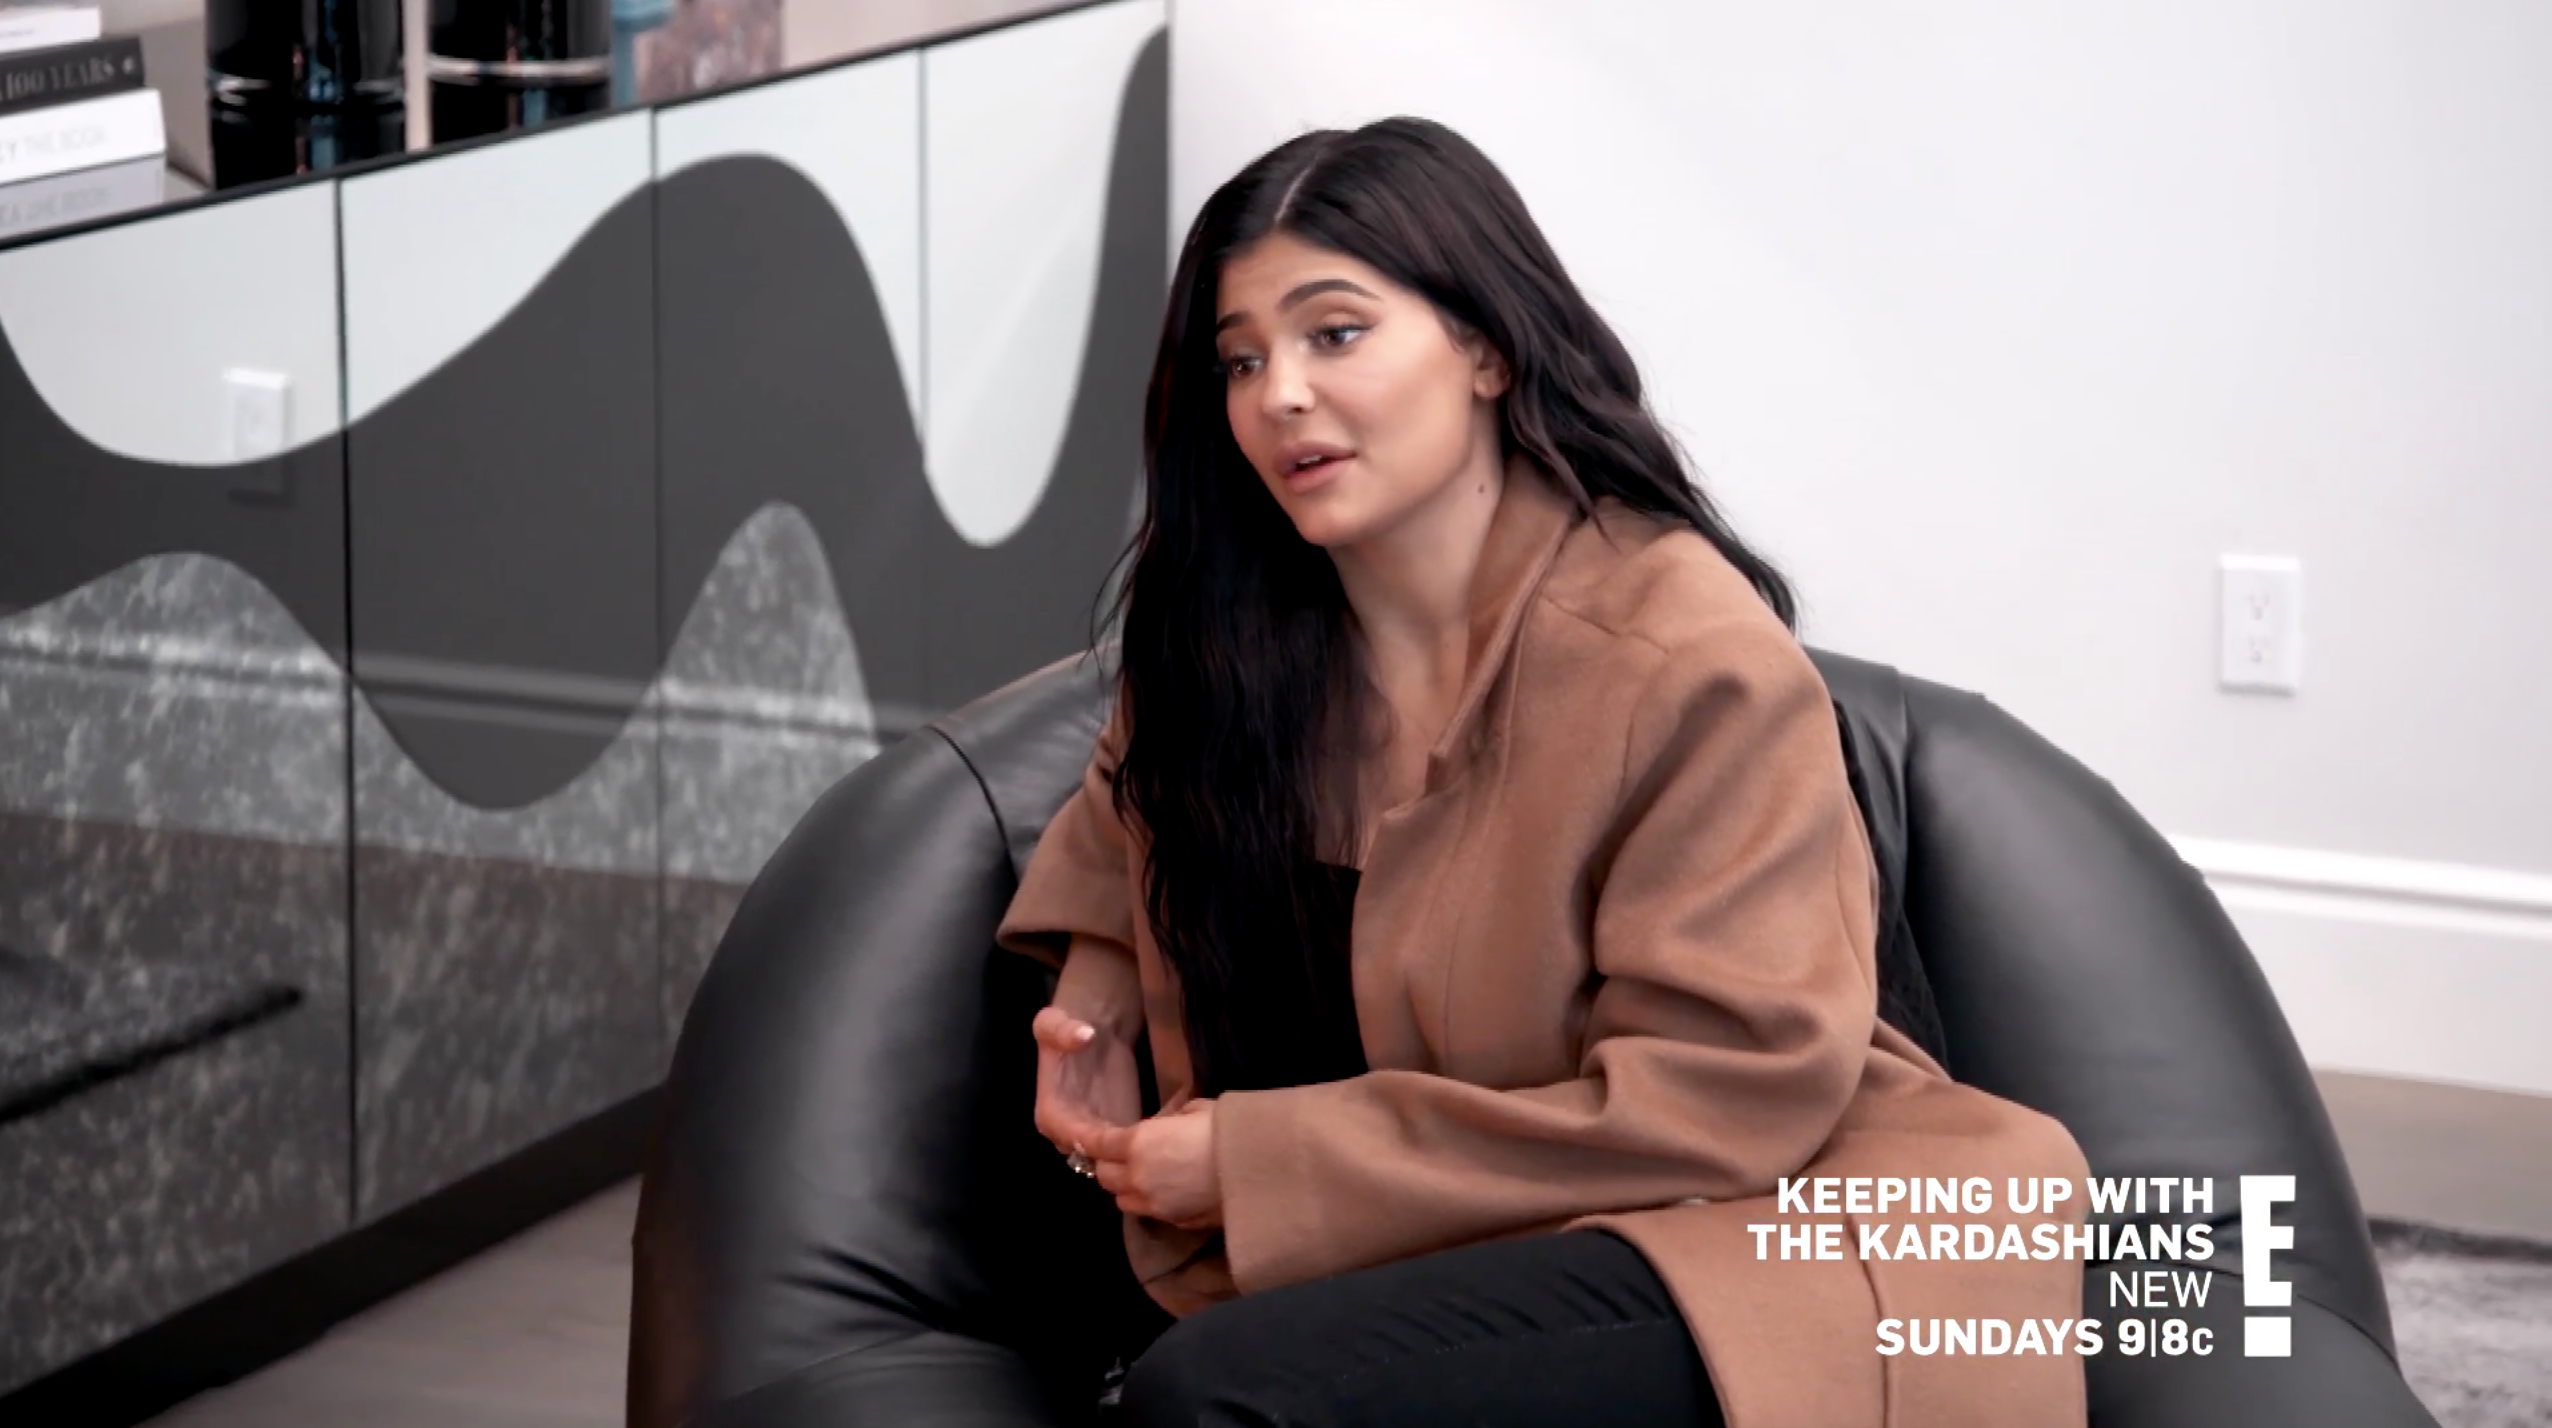 Watch Kylie Jenner and Khloé Kardashian's Initial Reactions to the Jordyn Woods Cheating Scandal